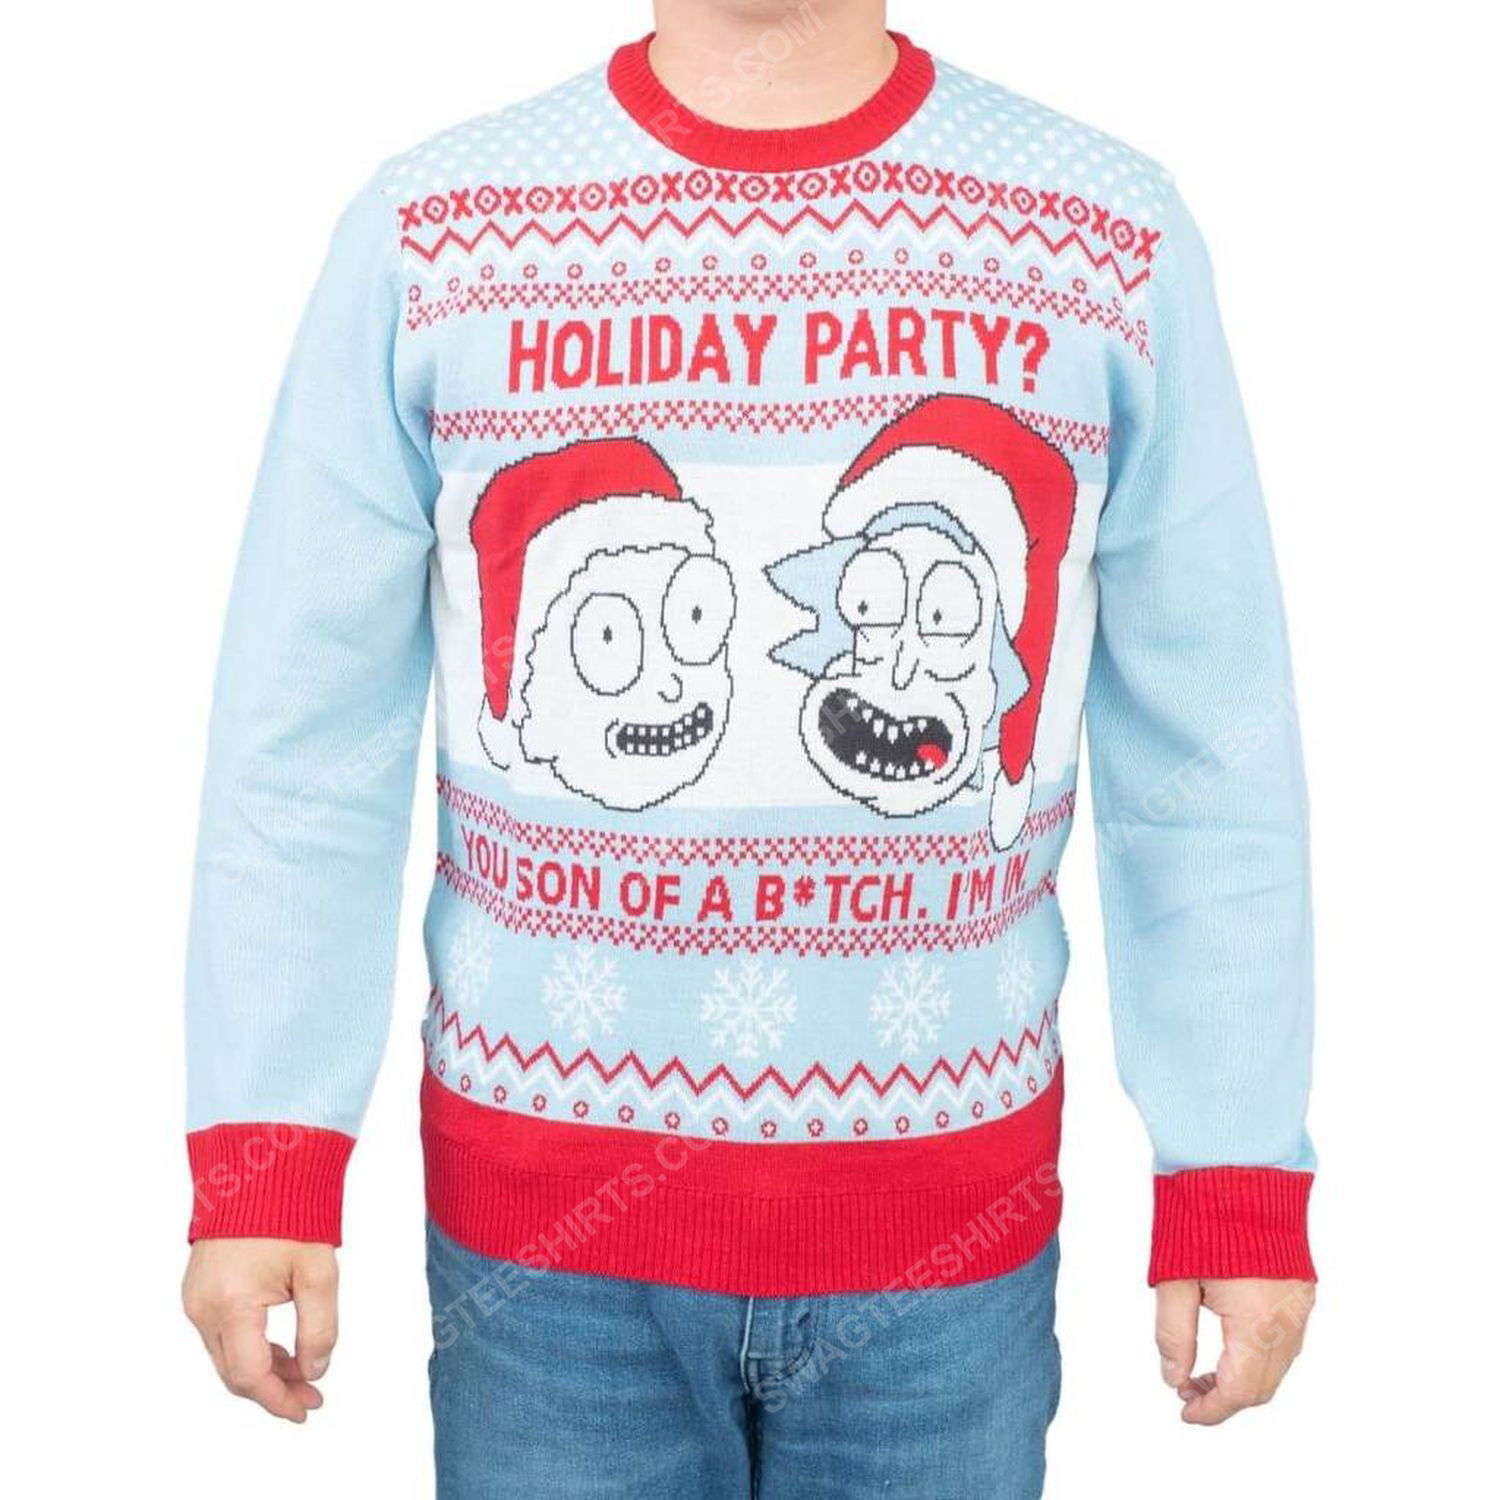 Rick and morty holiday party you son of a bitch i'm in full print ugly christmas sweater 1